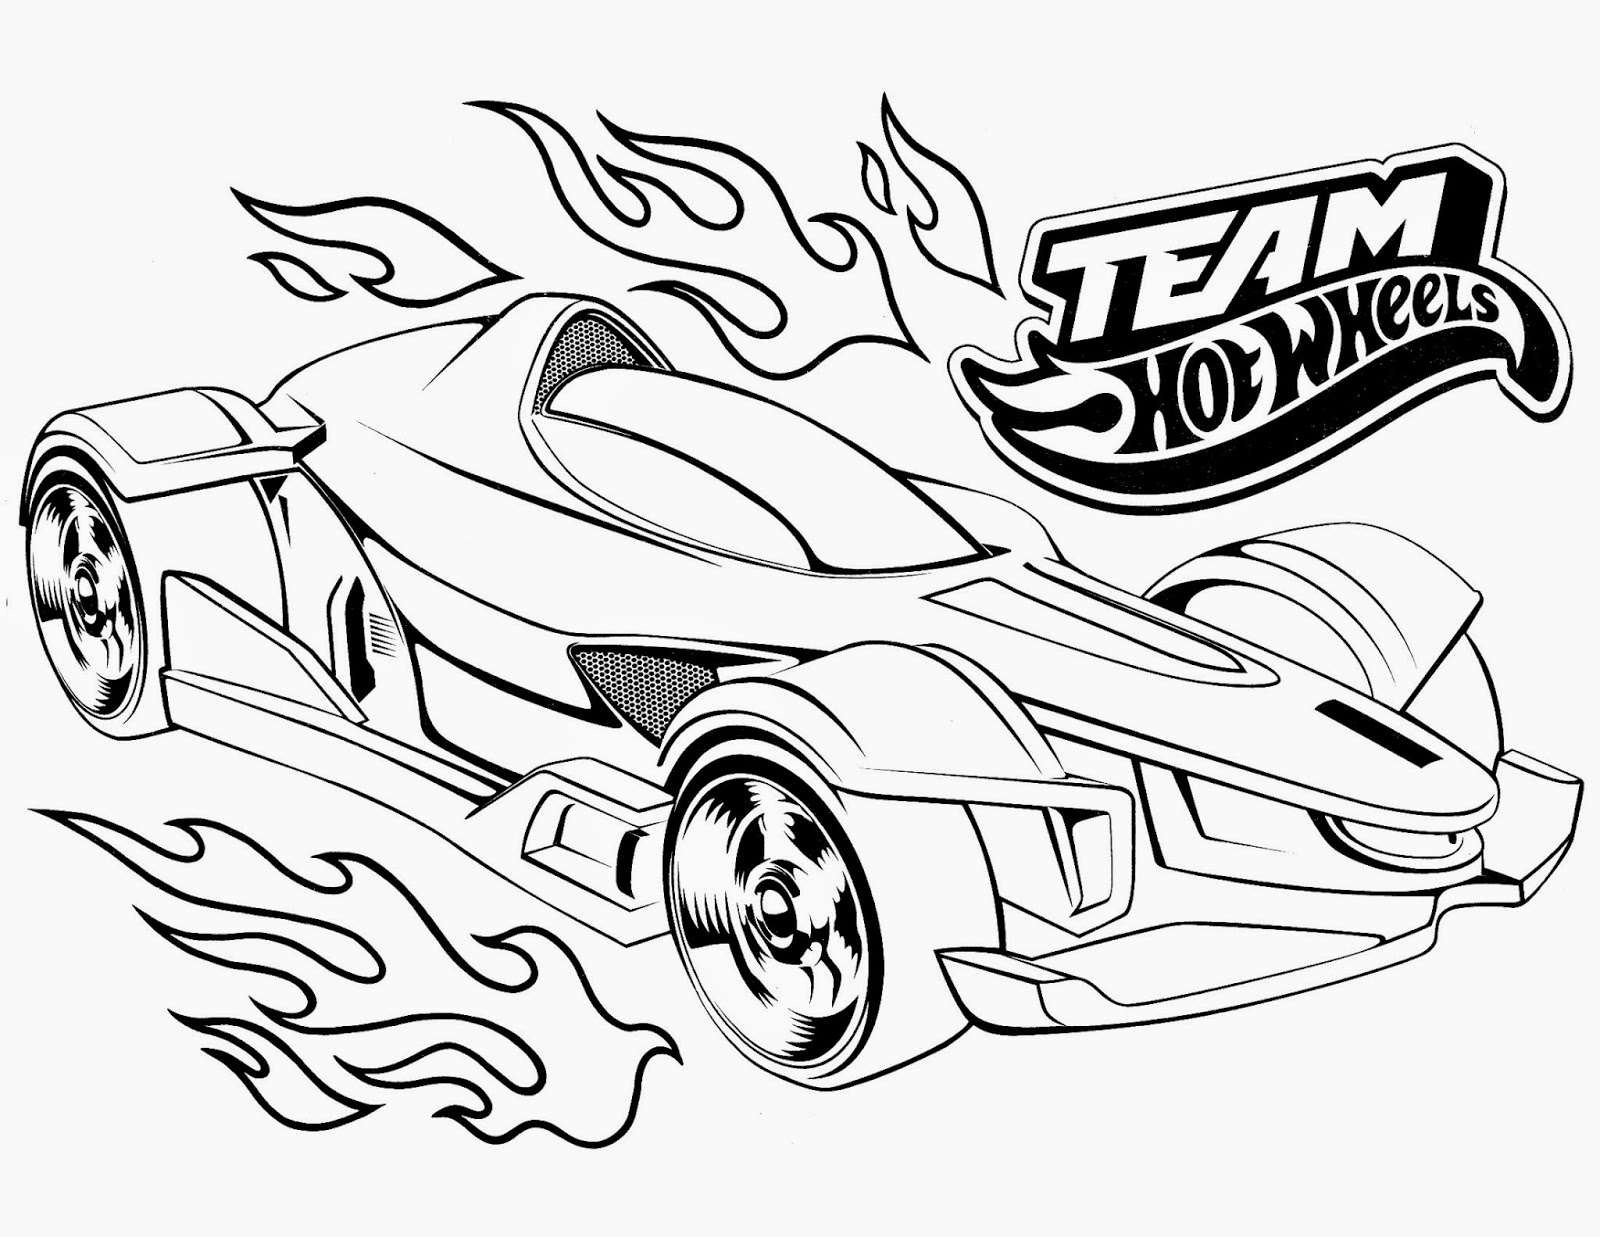 1600x1237 Hot Wheels Racing League Hot Wheels Coloring Pages